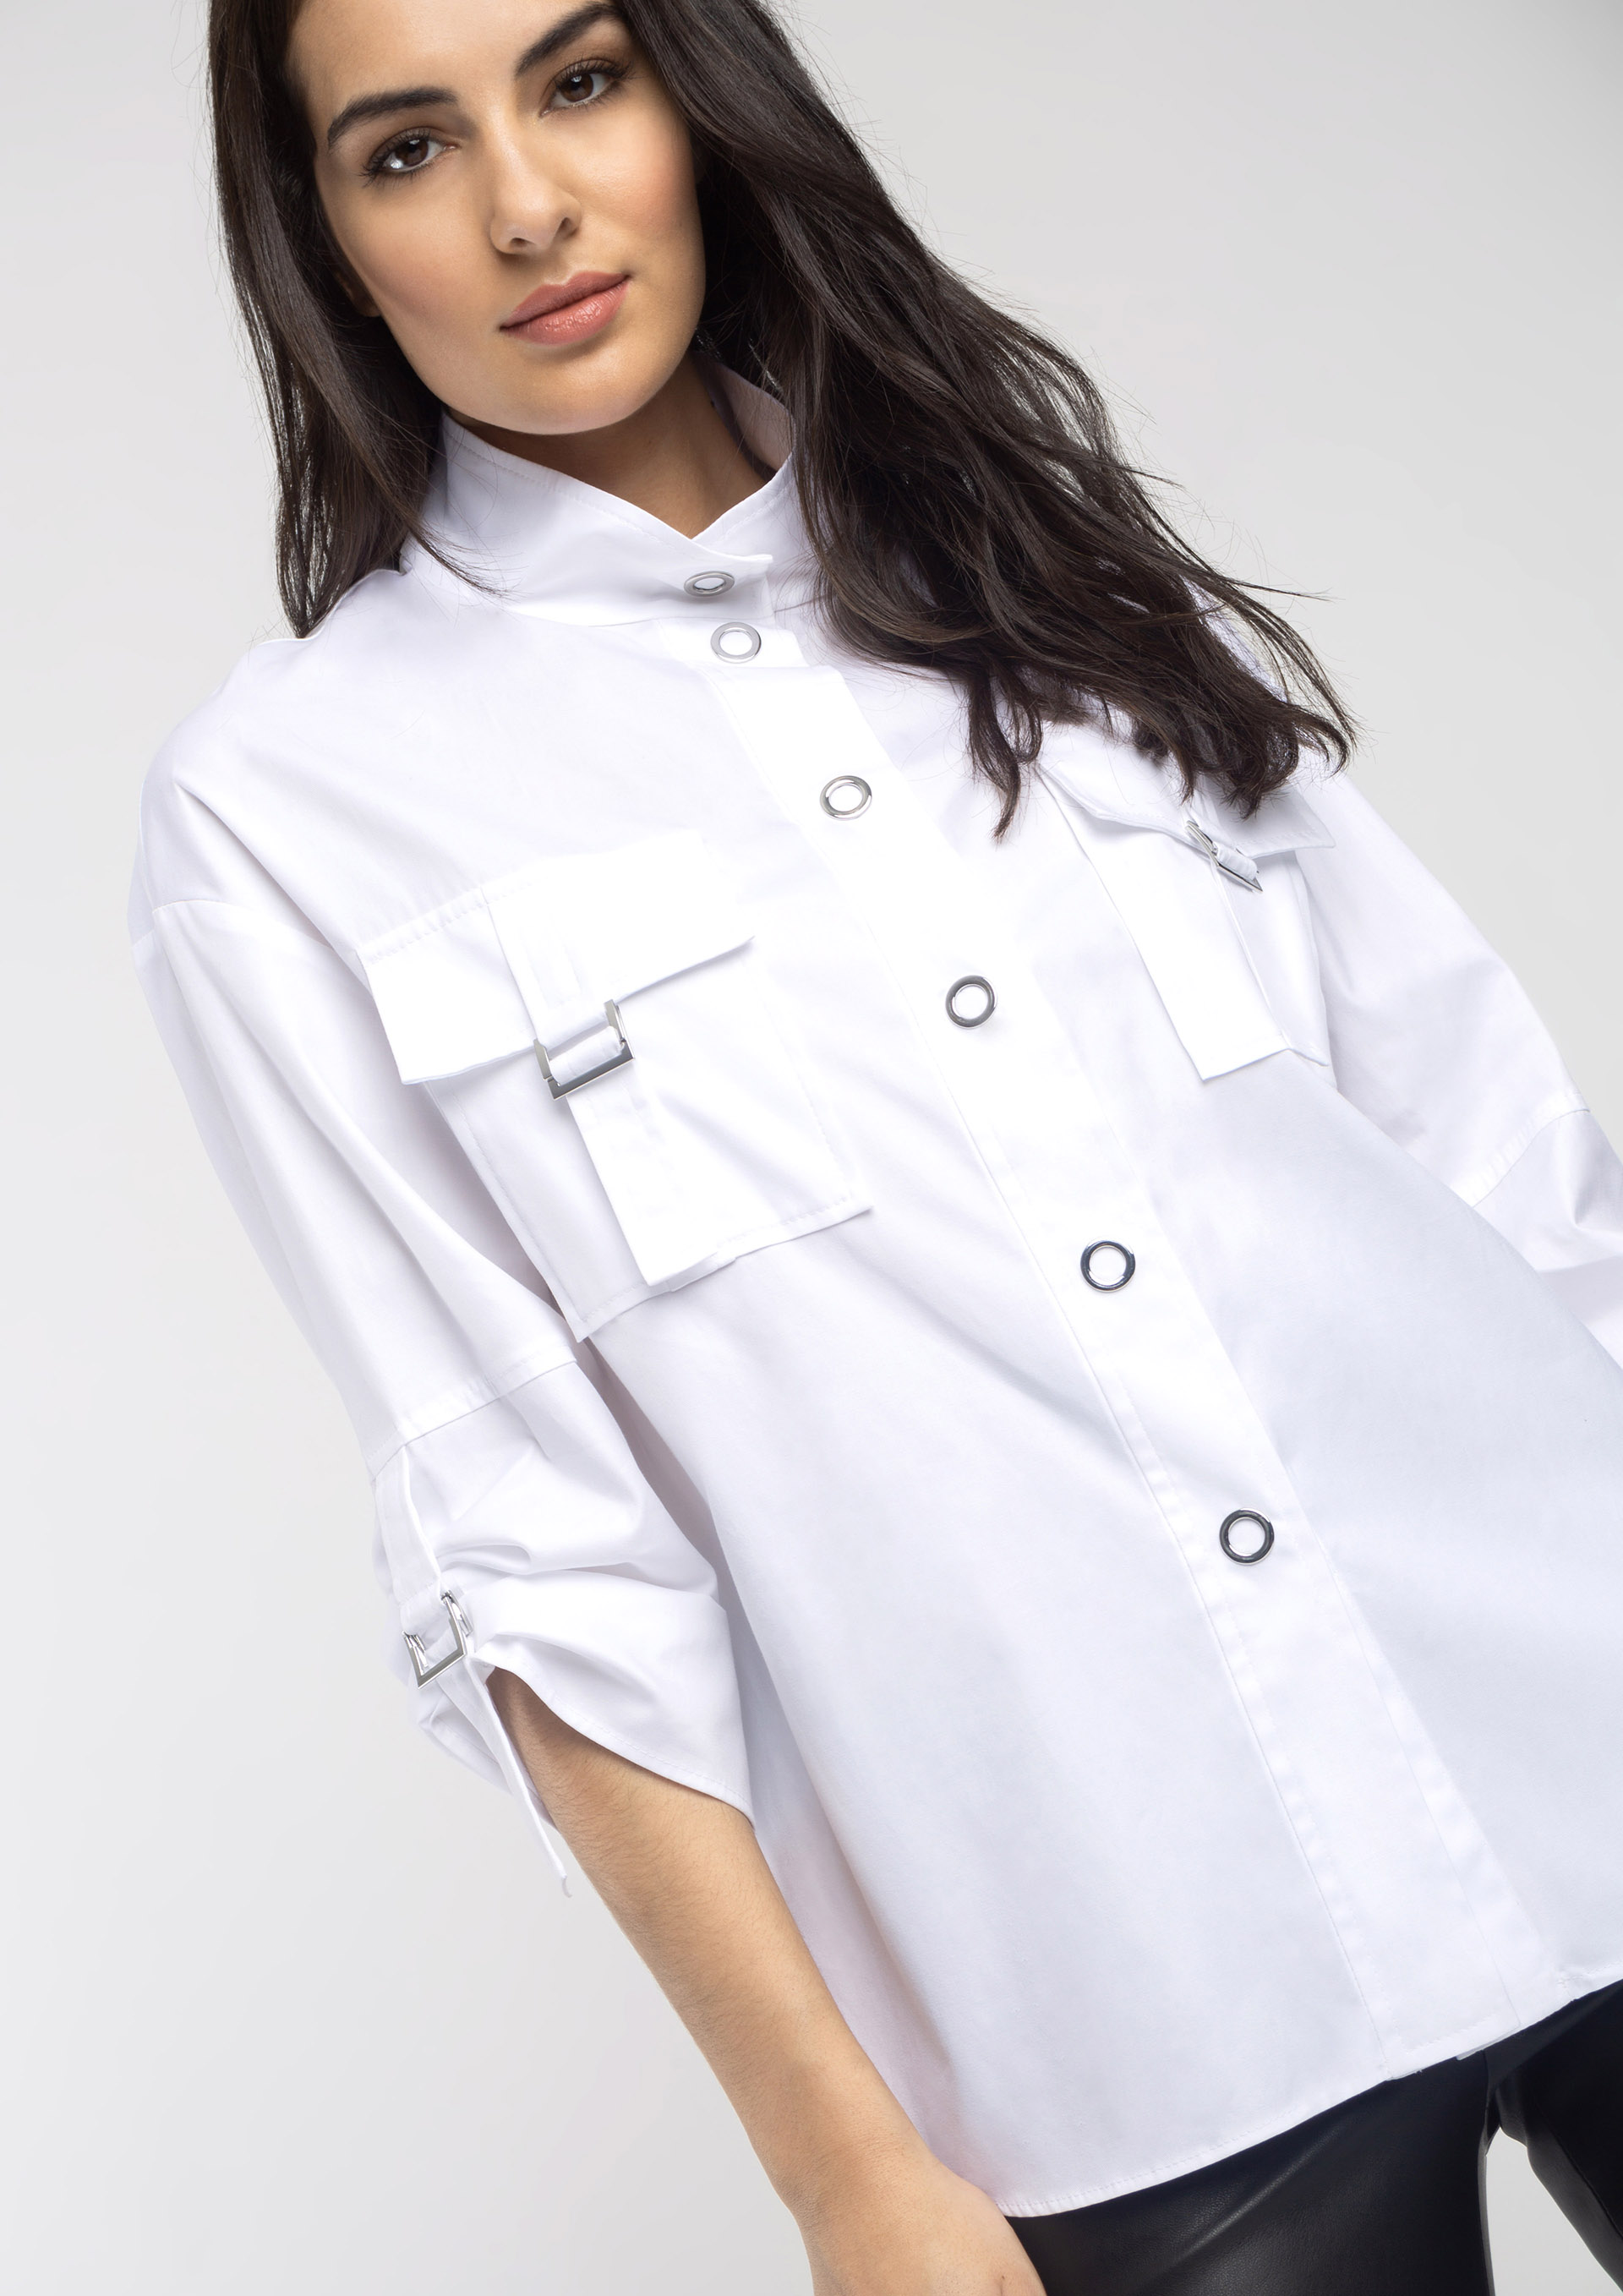 White shirt with loops